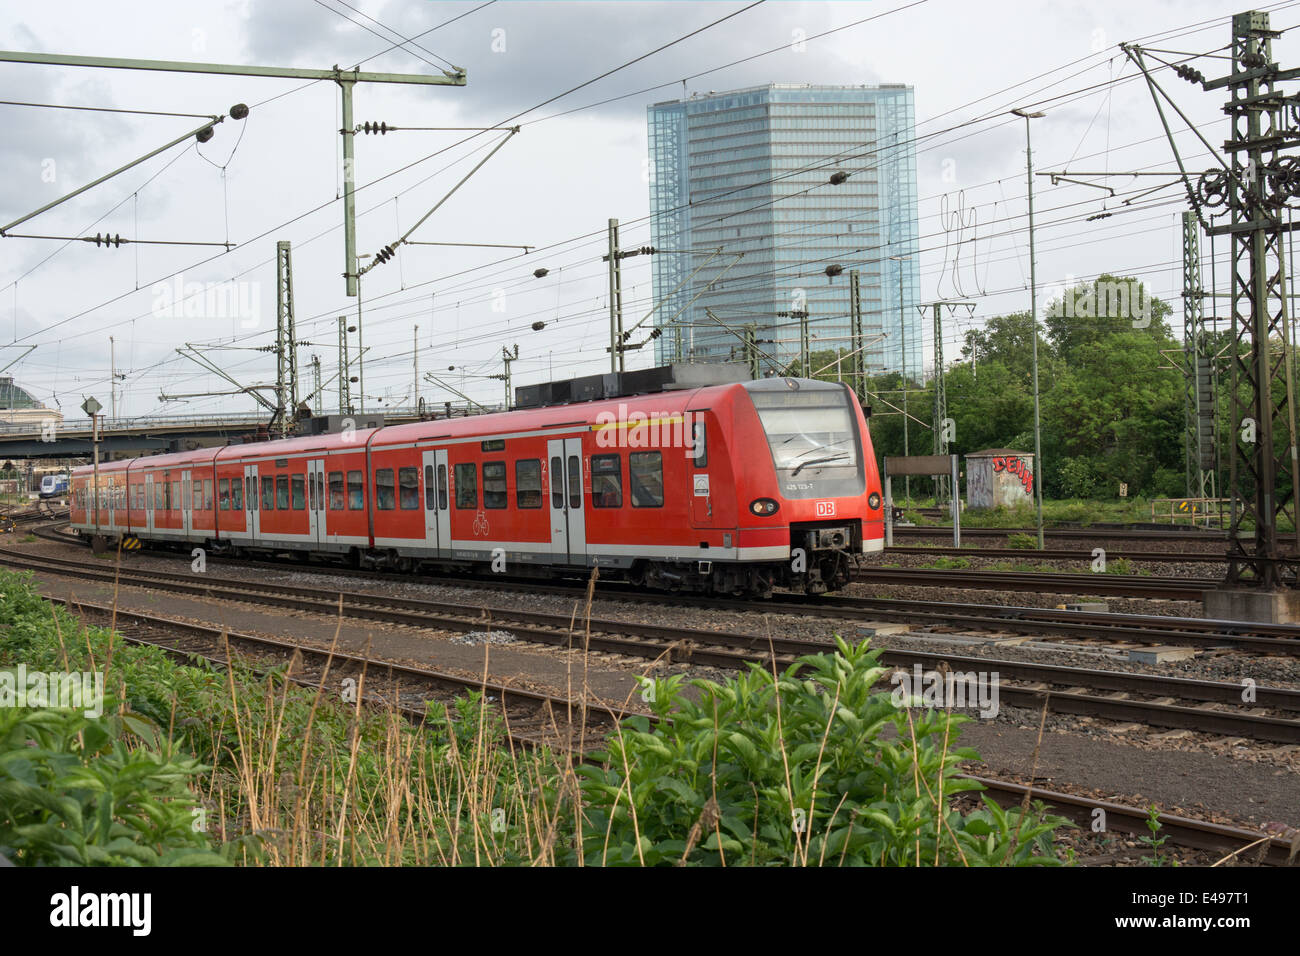 A S Bahn train leaves Mannheim station. It is operated by Deutsche Bahn Stock Photo